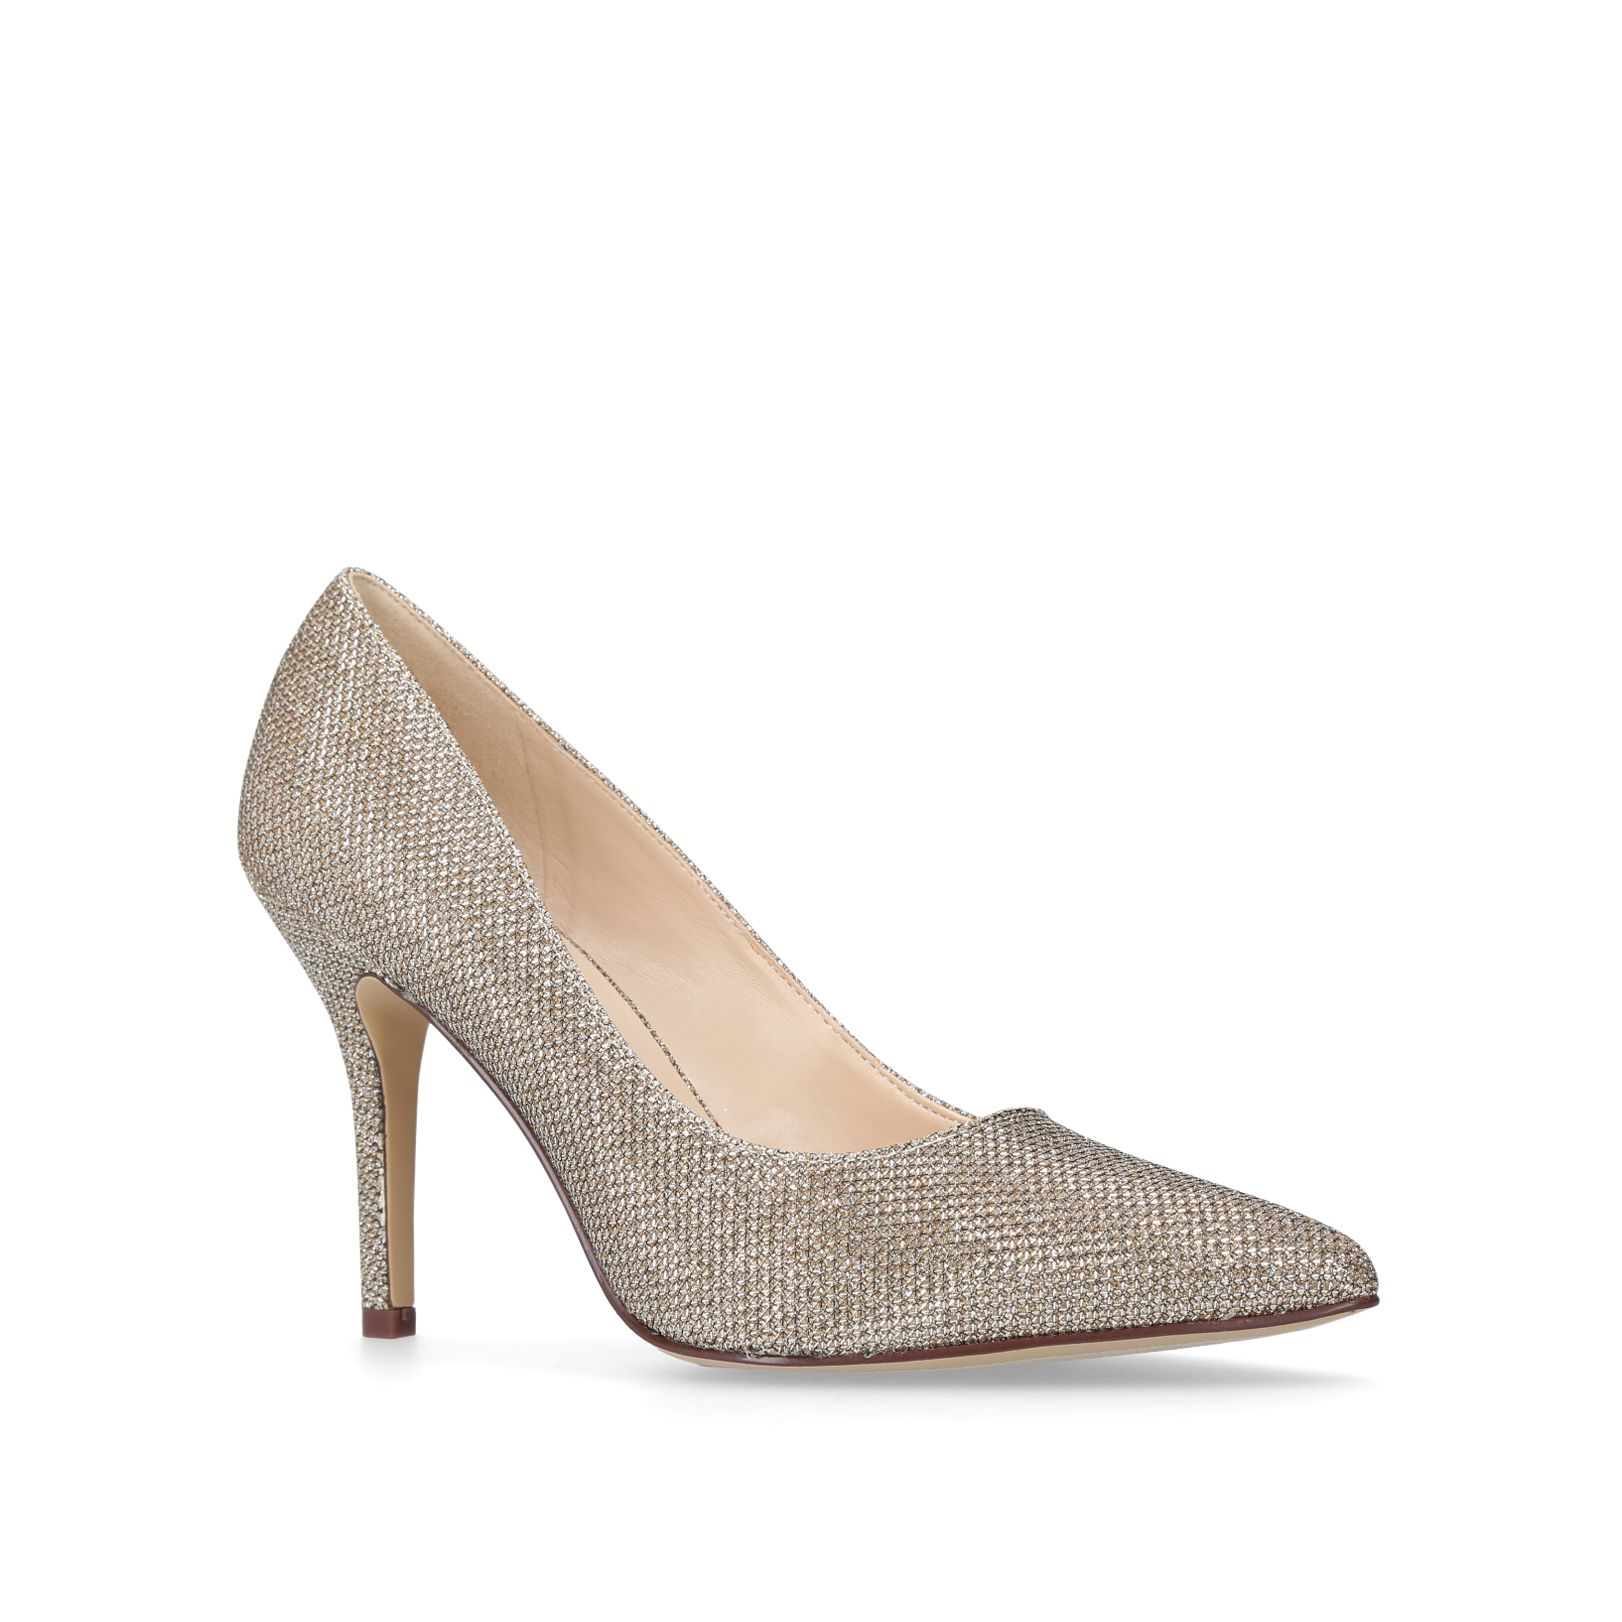 Nine West Flagship court shoes, Gold Silverlic